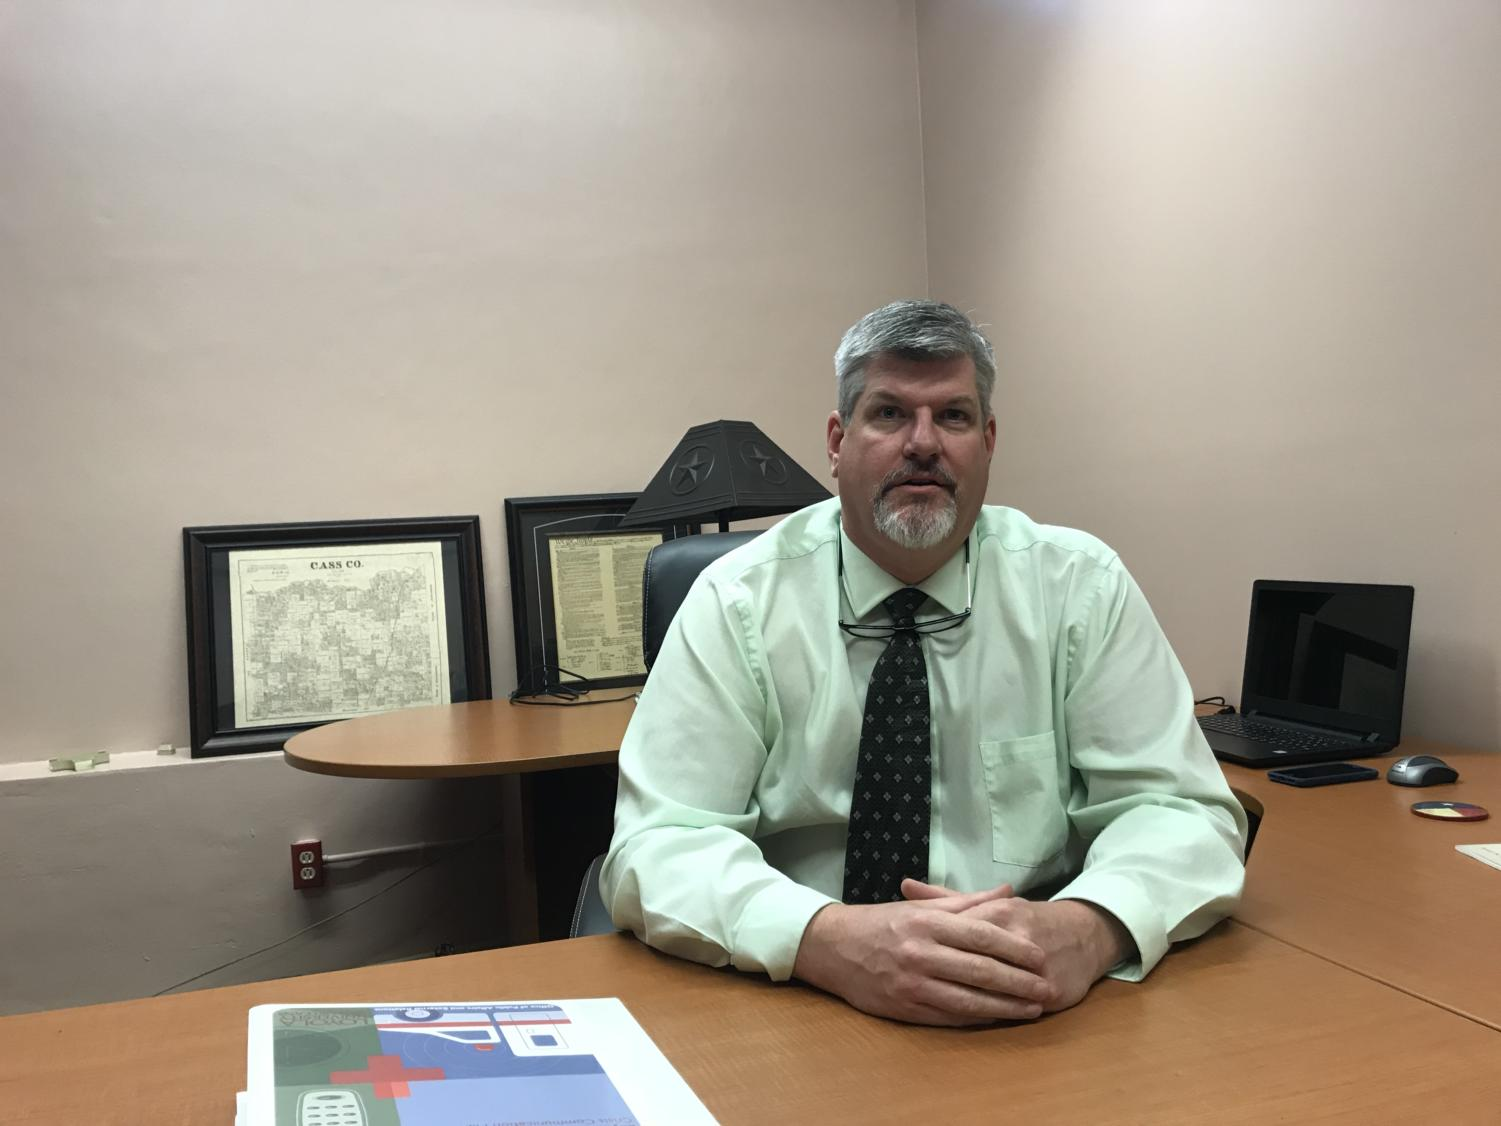 Director of Loyola University Police Department Todd Warren settles in to his new office. Warren brings 25 years of law enforcement experience. Photo credit: Andrew Lang